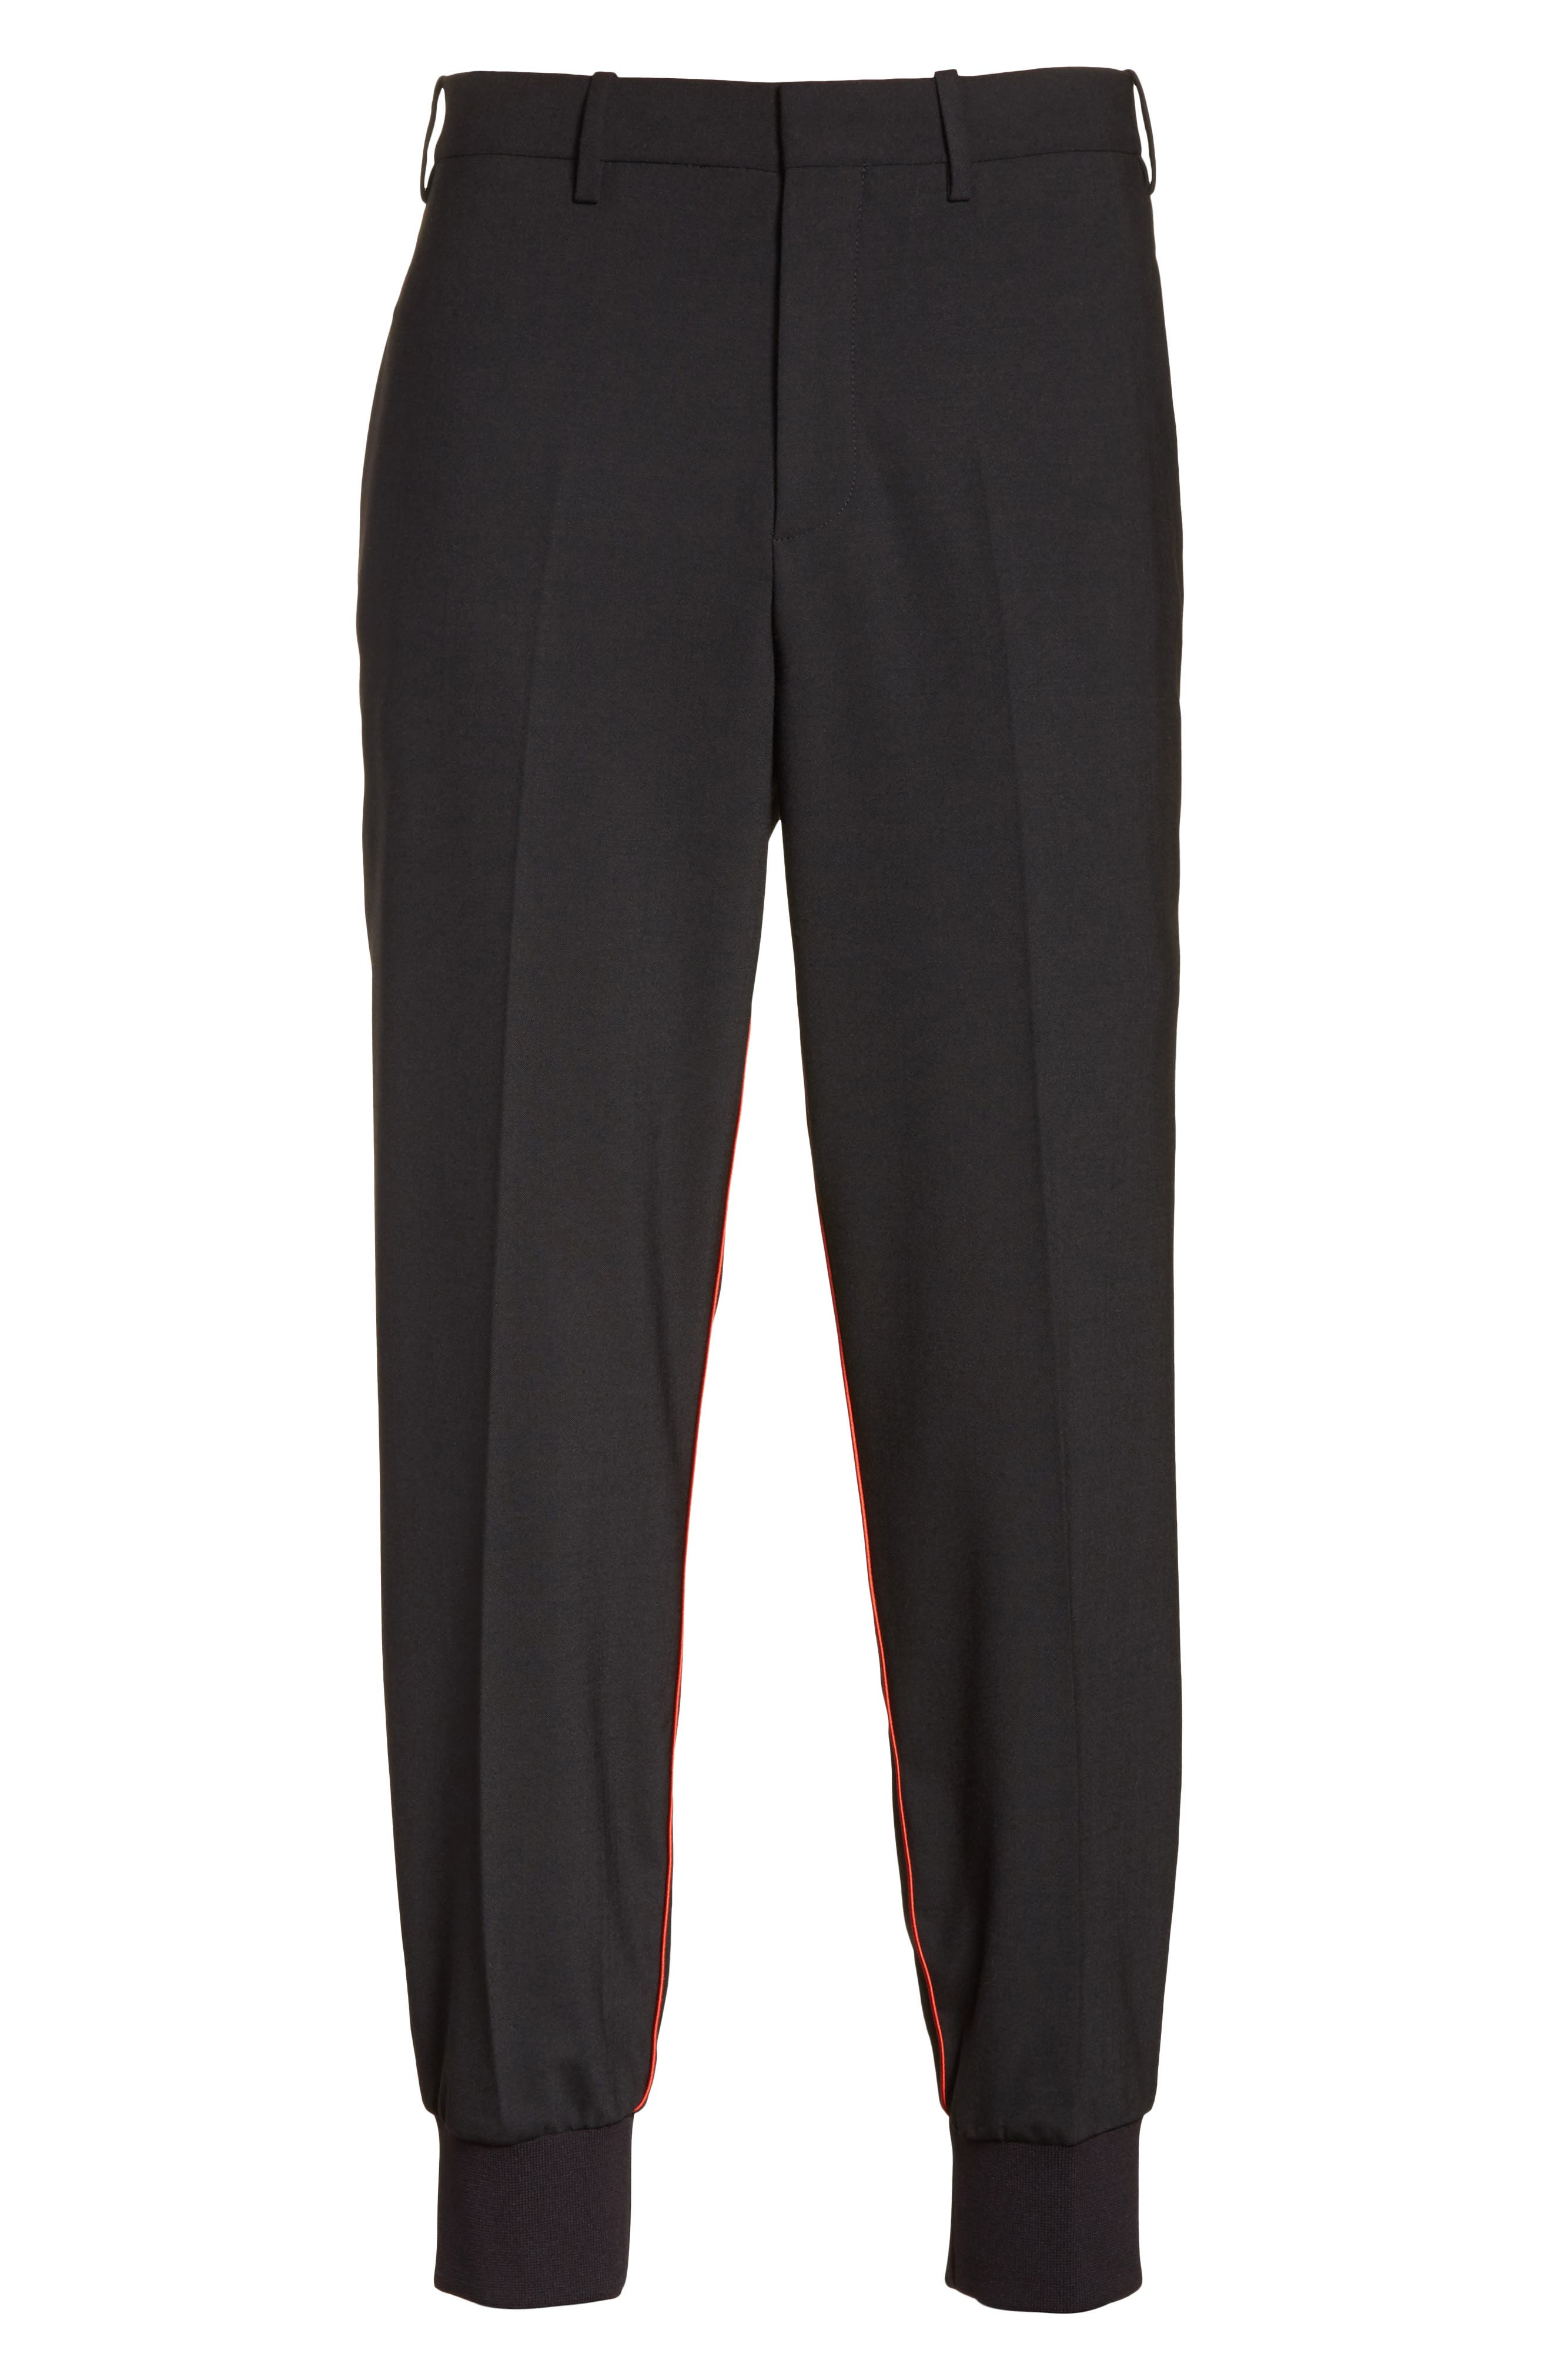 Piped Woven Jogger Pants,                             Alternate thumbnail 6, color,                             Black/ Red